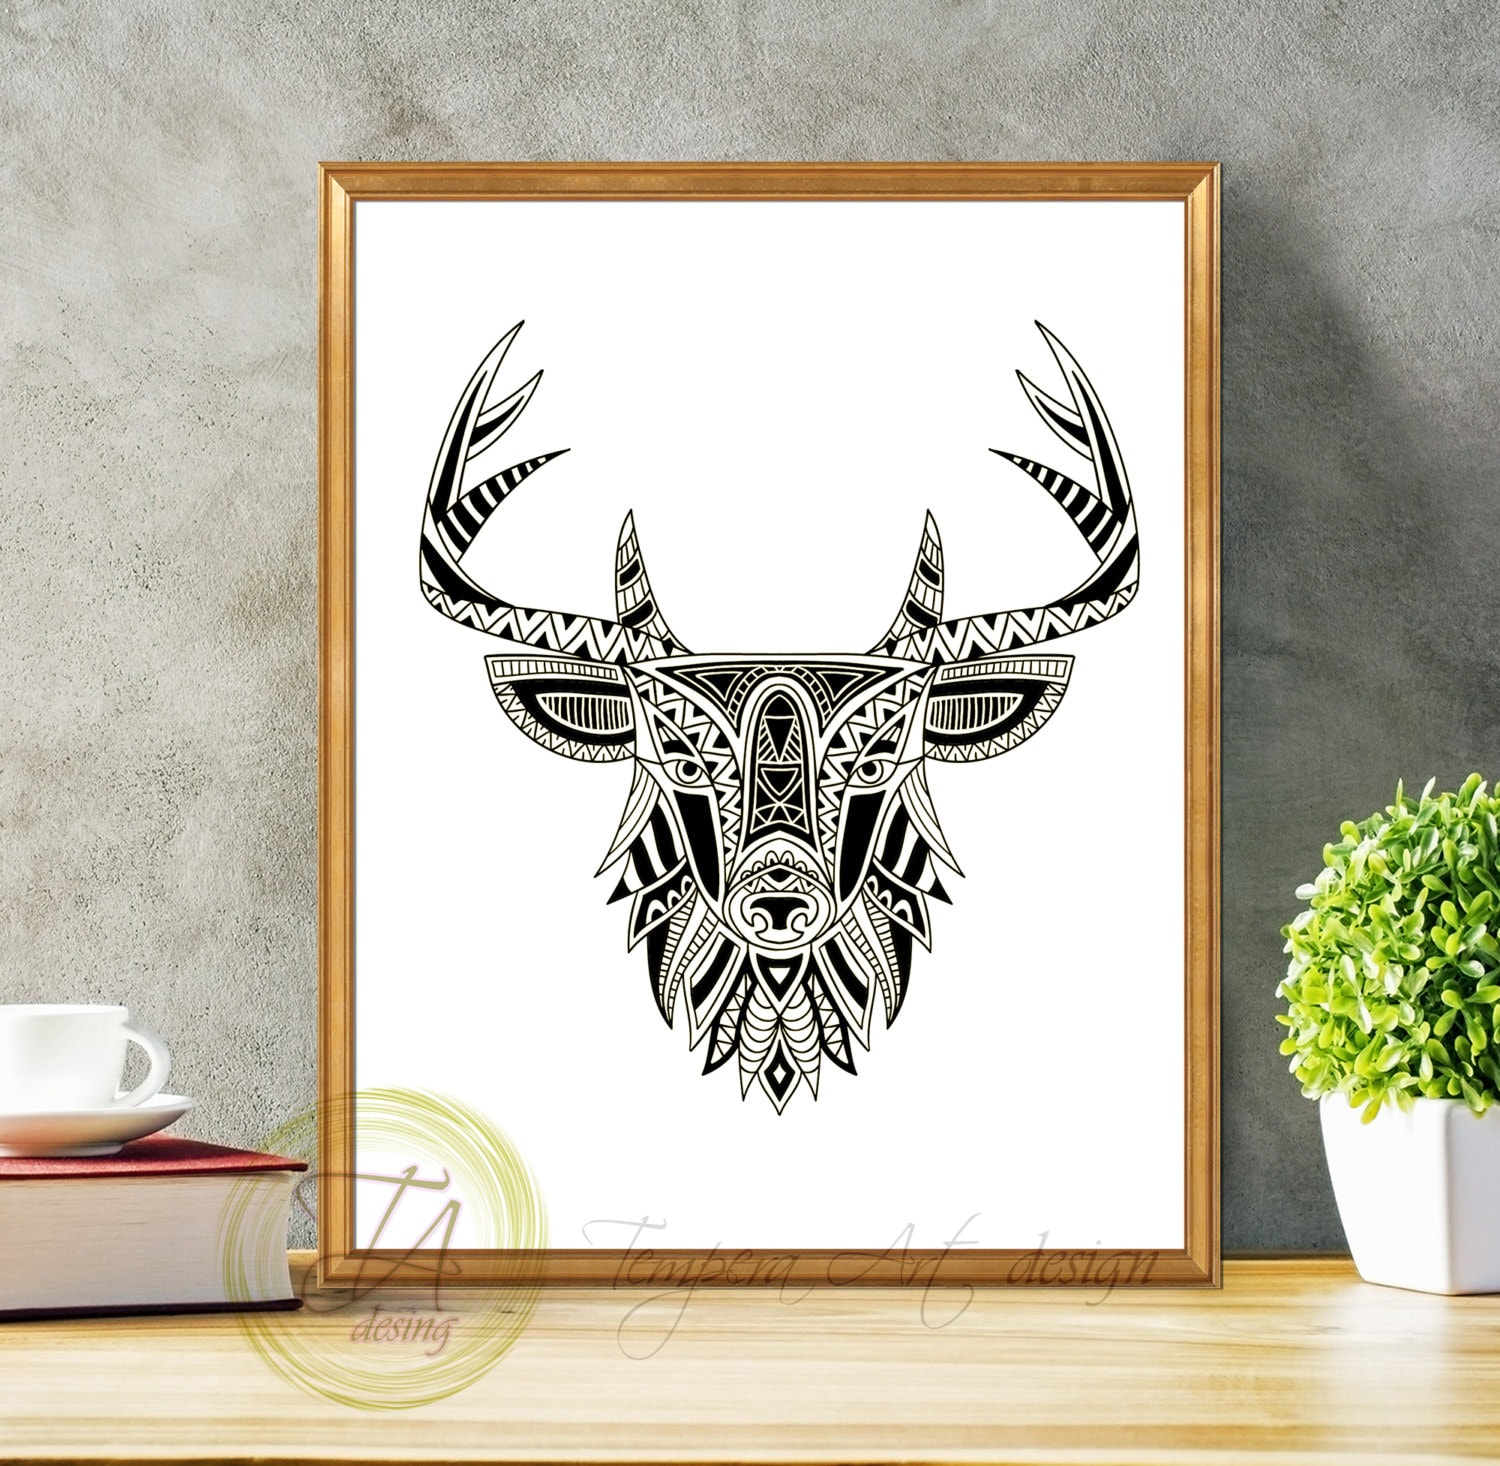 Black And White Wall Art black and white prints black and white art deer black and